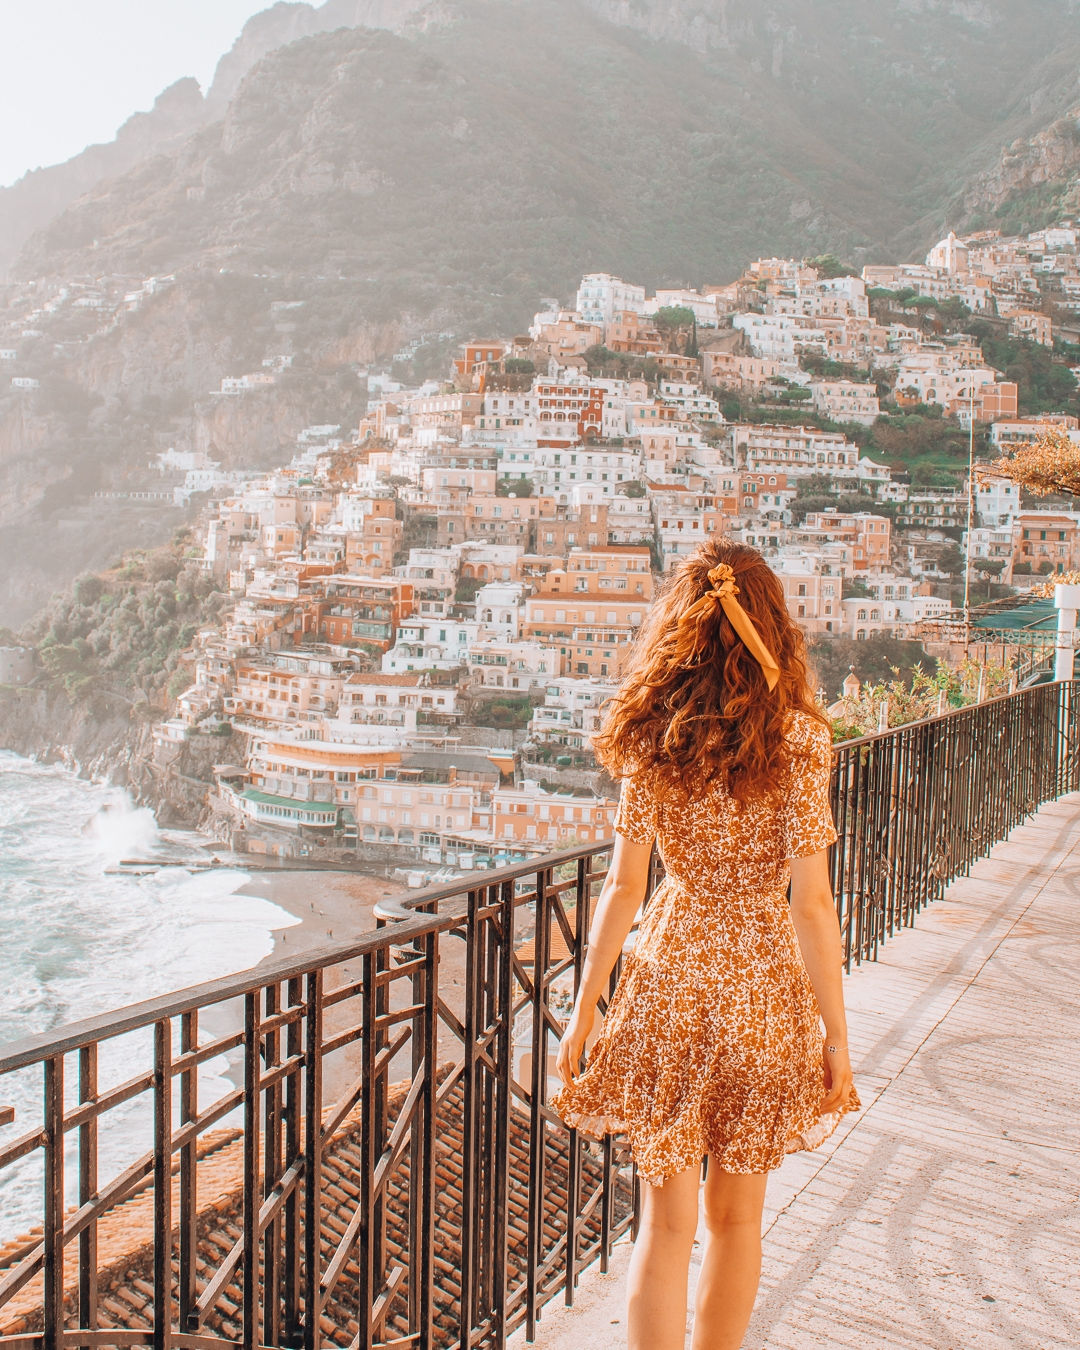 Girl on the sidewalk next to the road in Positano